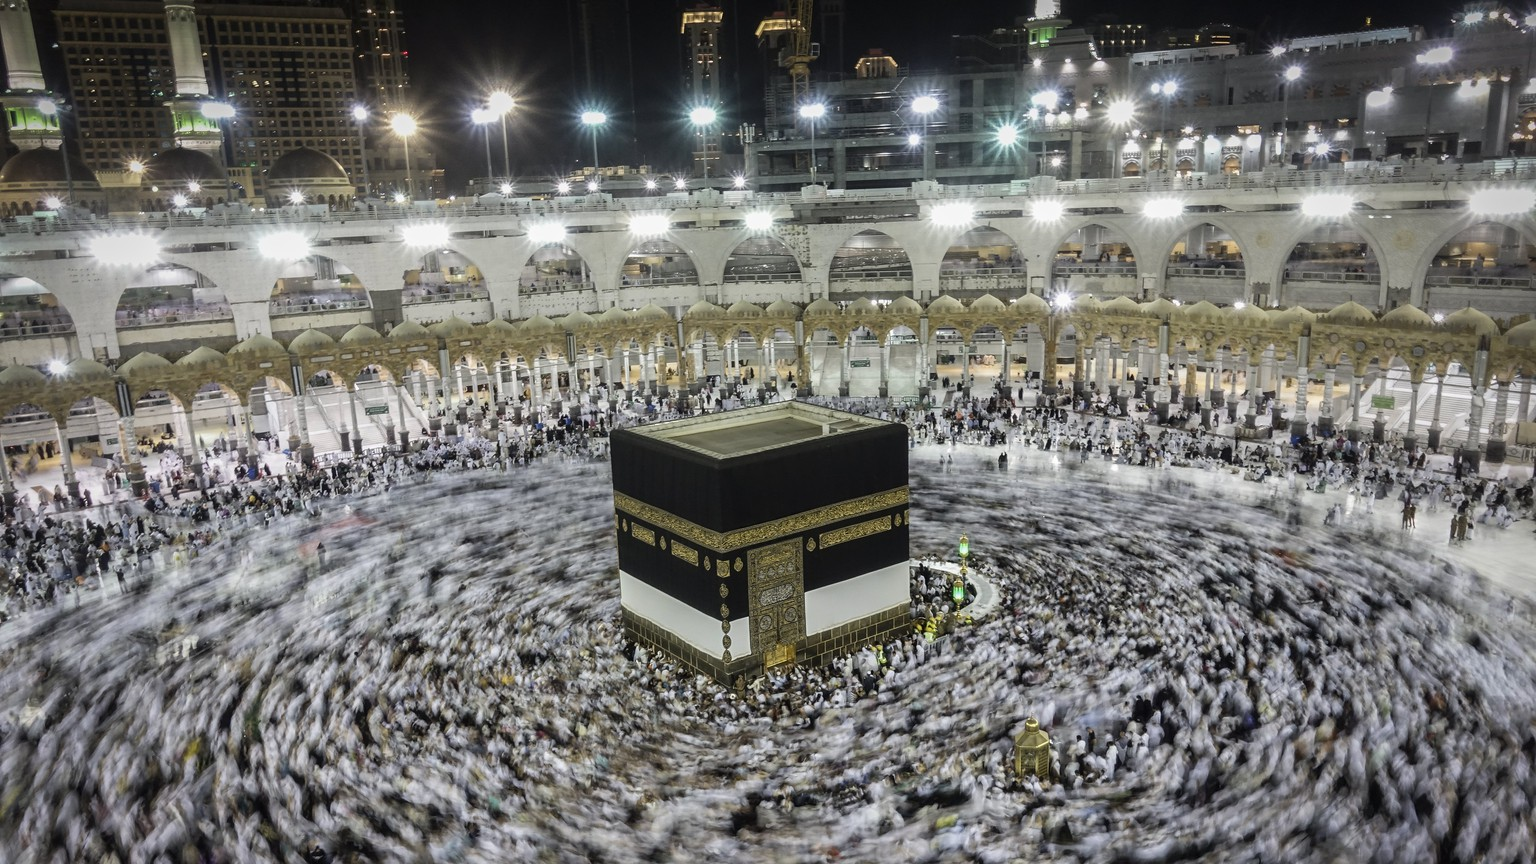 epa06170838 A slow shutter speed picture shows Muslim worshippers praying around the holy Kaaba at the Grand Mosque in Mecca, Saudi Arabia, 29 August 2017. Around 2.6 million muslim are expected to attend this year's Hajj pilgrimage, which is highlighted by the Day of Arafah, one day prior to Eid al-Adha. Eid al-Adha is the holiest of the two Muslims holidays celebrated each year, it marks the yearly Muslim pilgrimage (Hajj) to visit Mecca, the holiest place in Islam. Muslims slaughter a sacrificial animal and split the meat into three parts, one for the family, one for friends and relatives, and one for the poor and needy.  EPA/MAST IRHAM